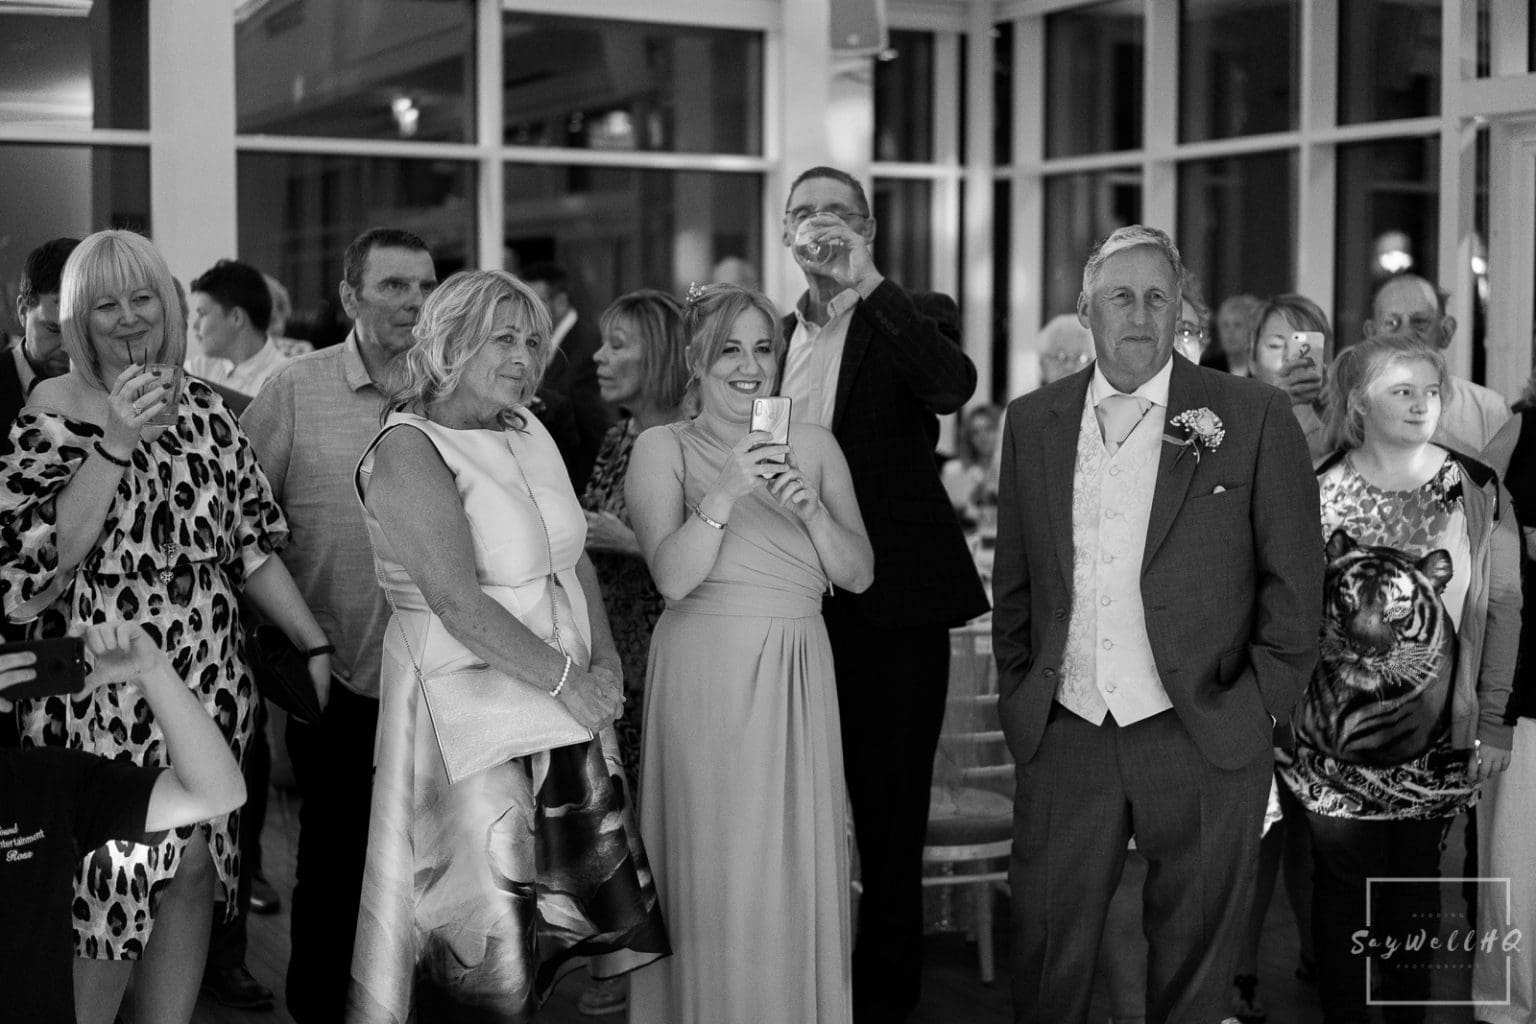 Winstanley House Wedding Photography - wedding guests enjoy the bride and groom first dance